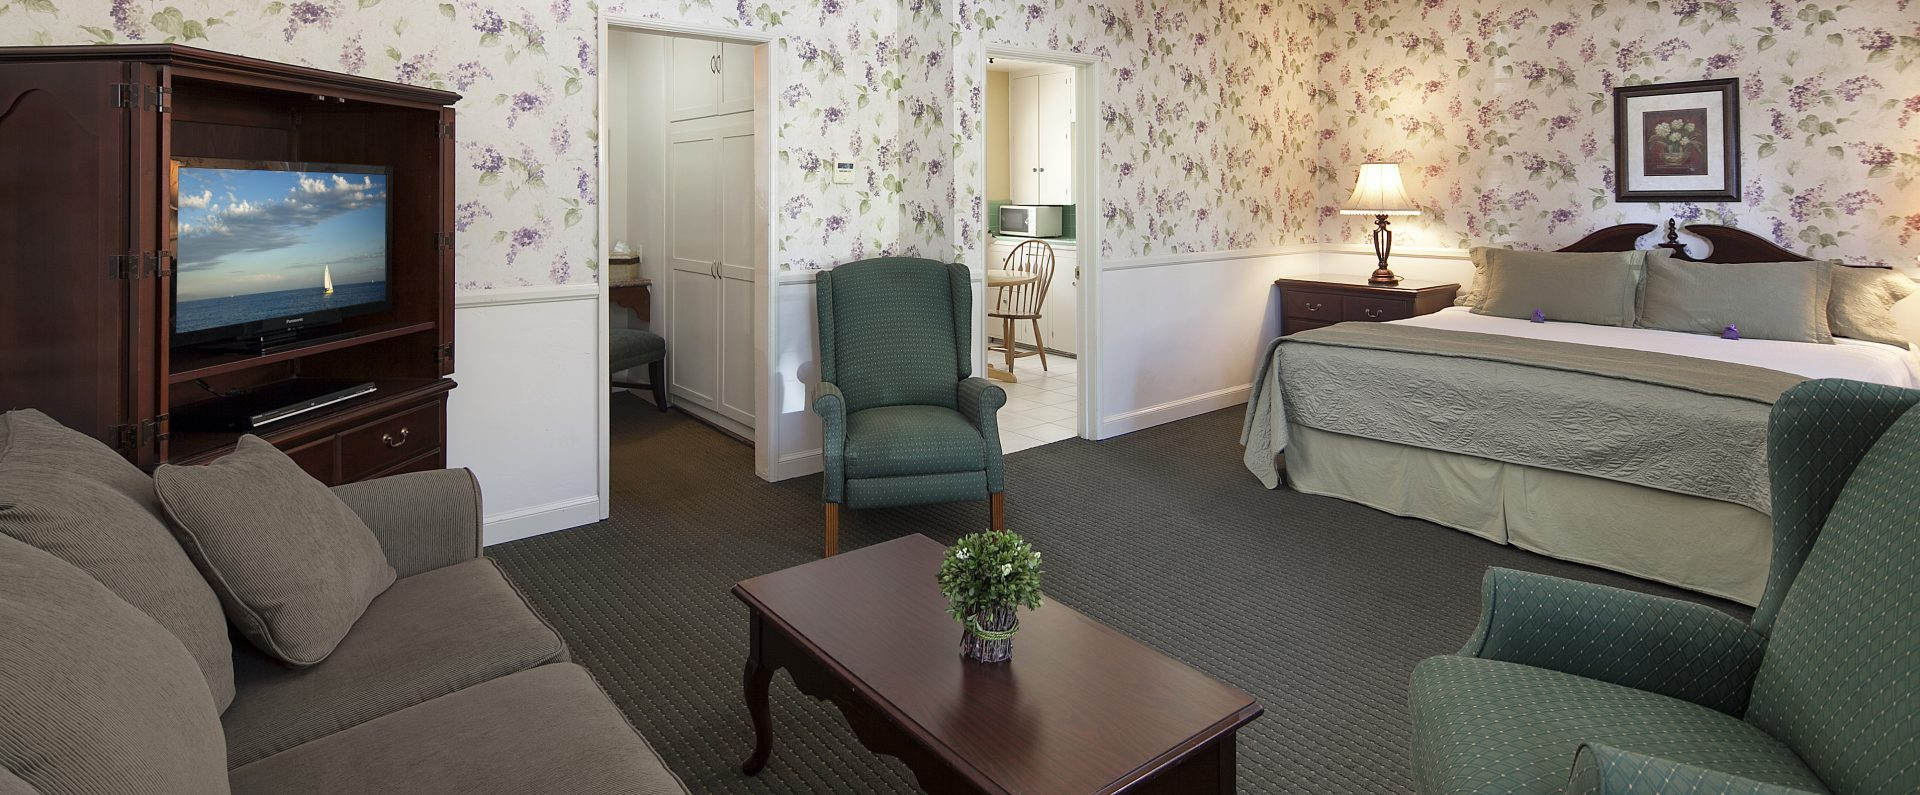 spacious rooms at Lavender Inn by the Sea